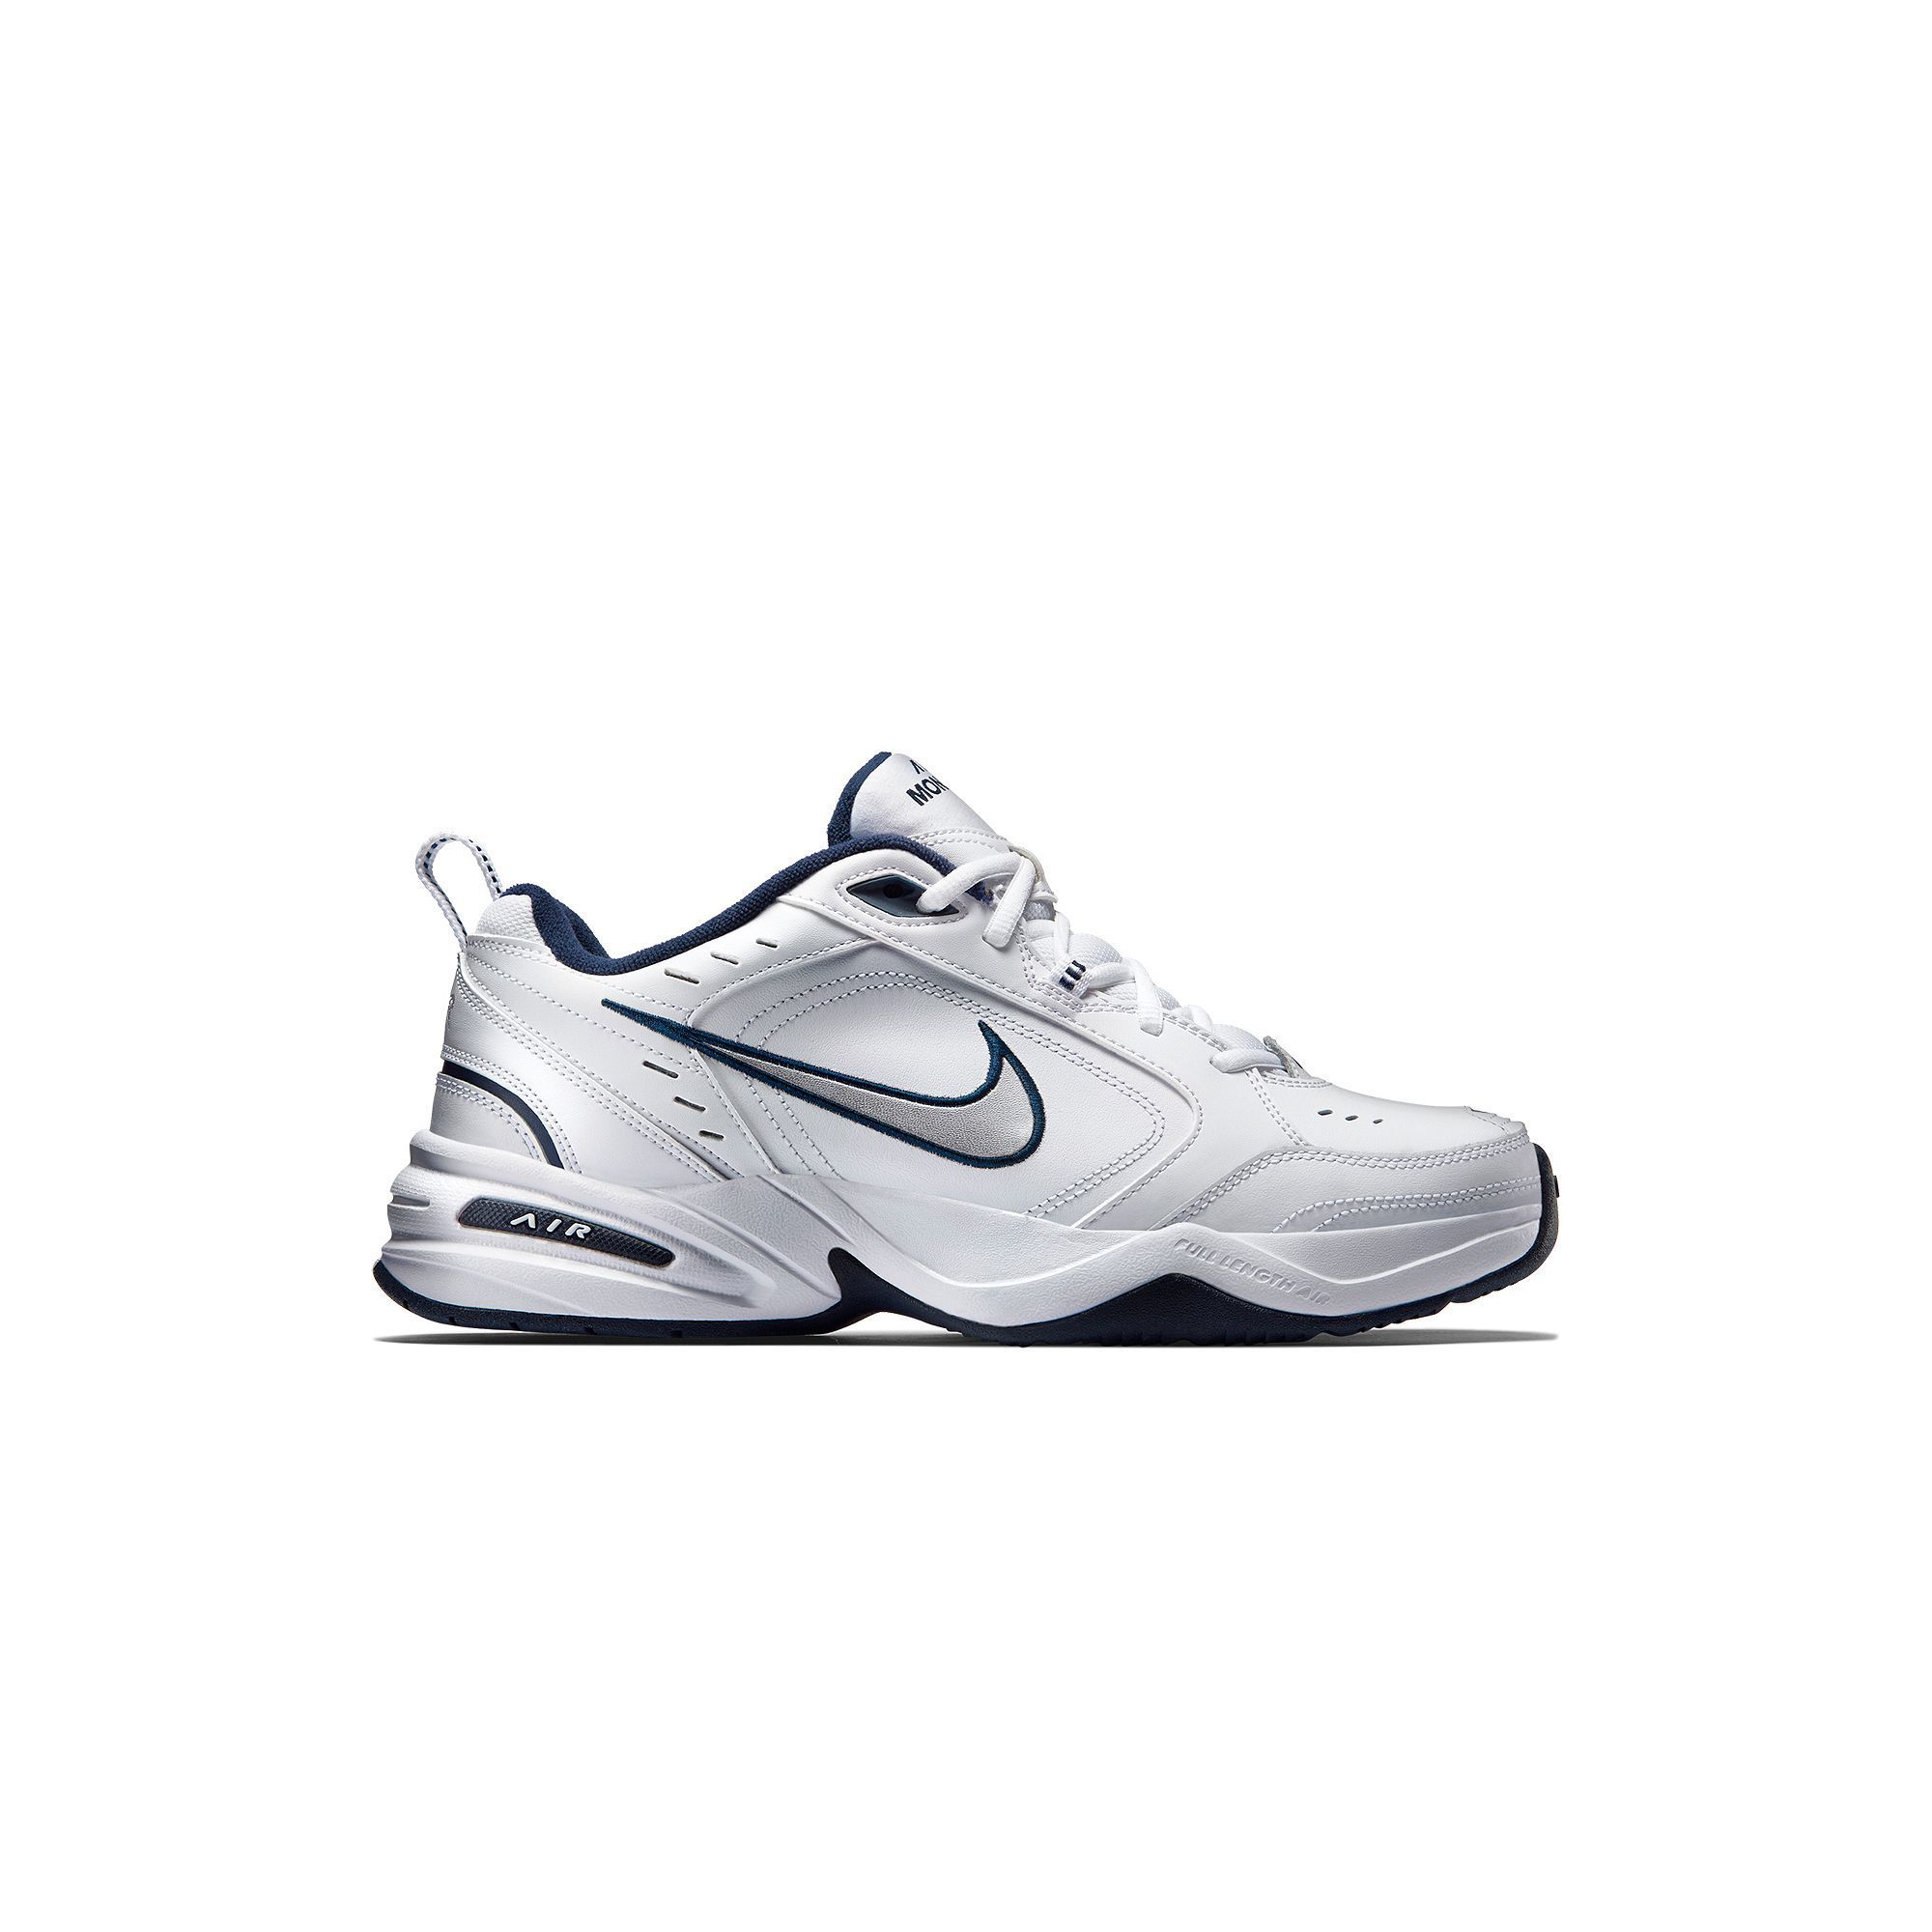 Nike Air Monarch IV Men's Cross-Training Shoes, Size: 14, White